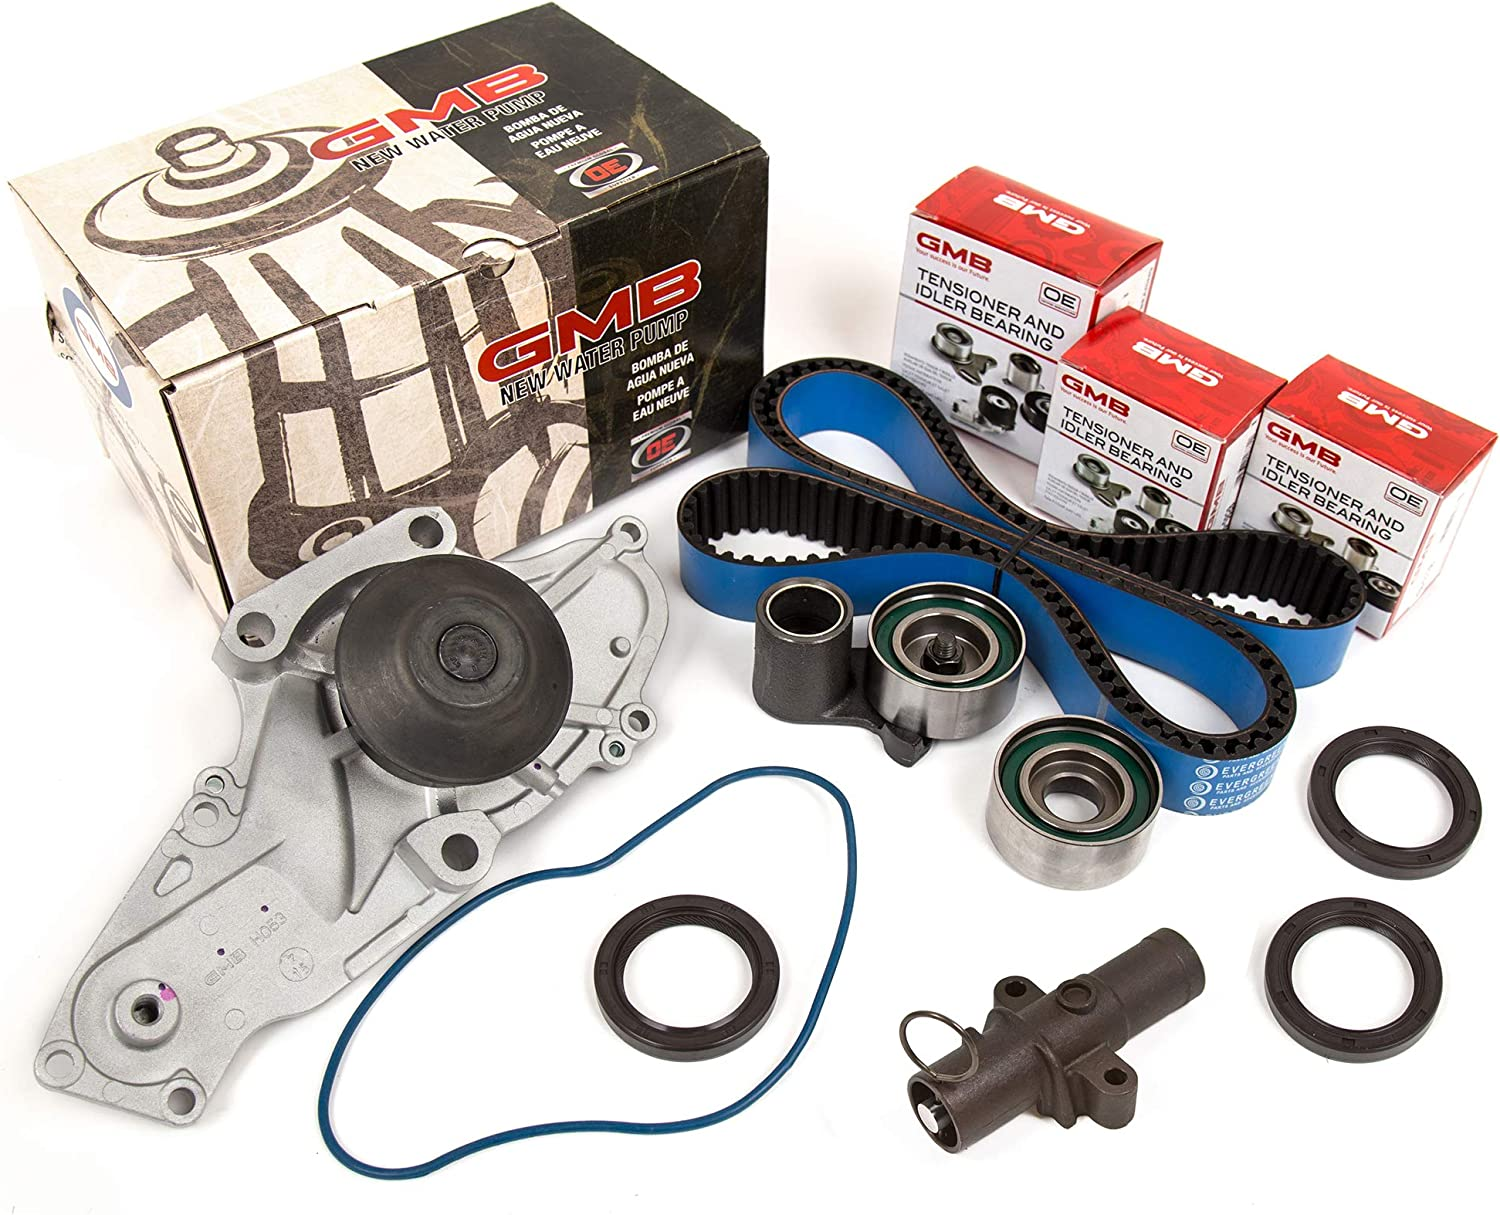 Timing Belt Kit GMB Water Pump Valve Cover Gasket Fit Acura Honda J32A J35A